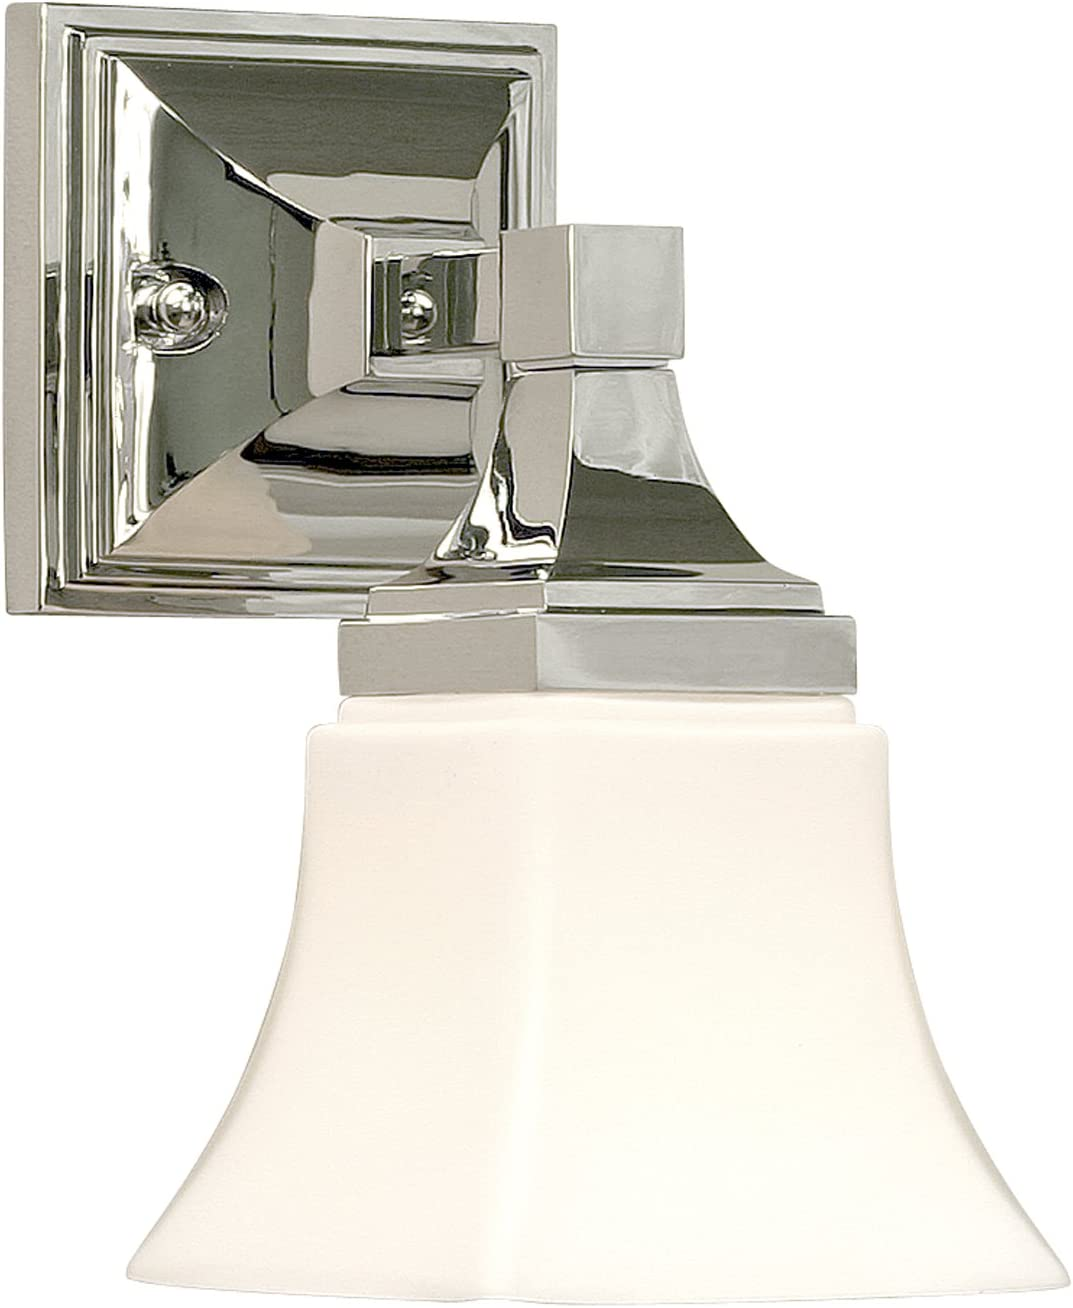 Premier 617523 Union Square Vanity Fixture 1-Light, Chrome